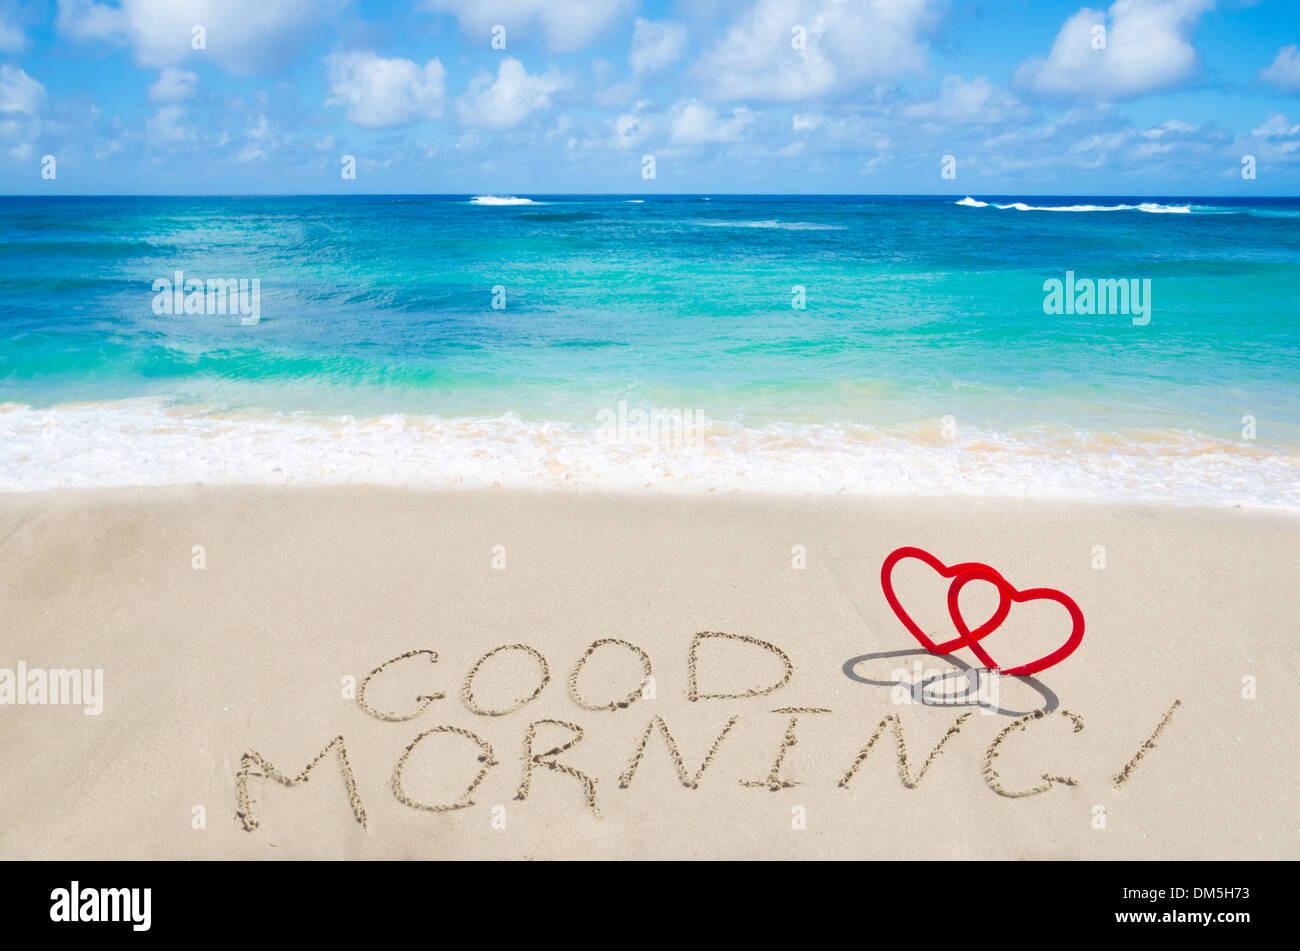 Sign 'Good morning' with two hearts on the sandy beach by the ocean - Stock Image